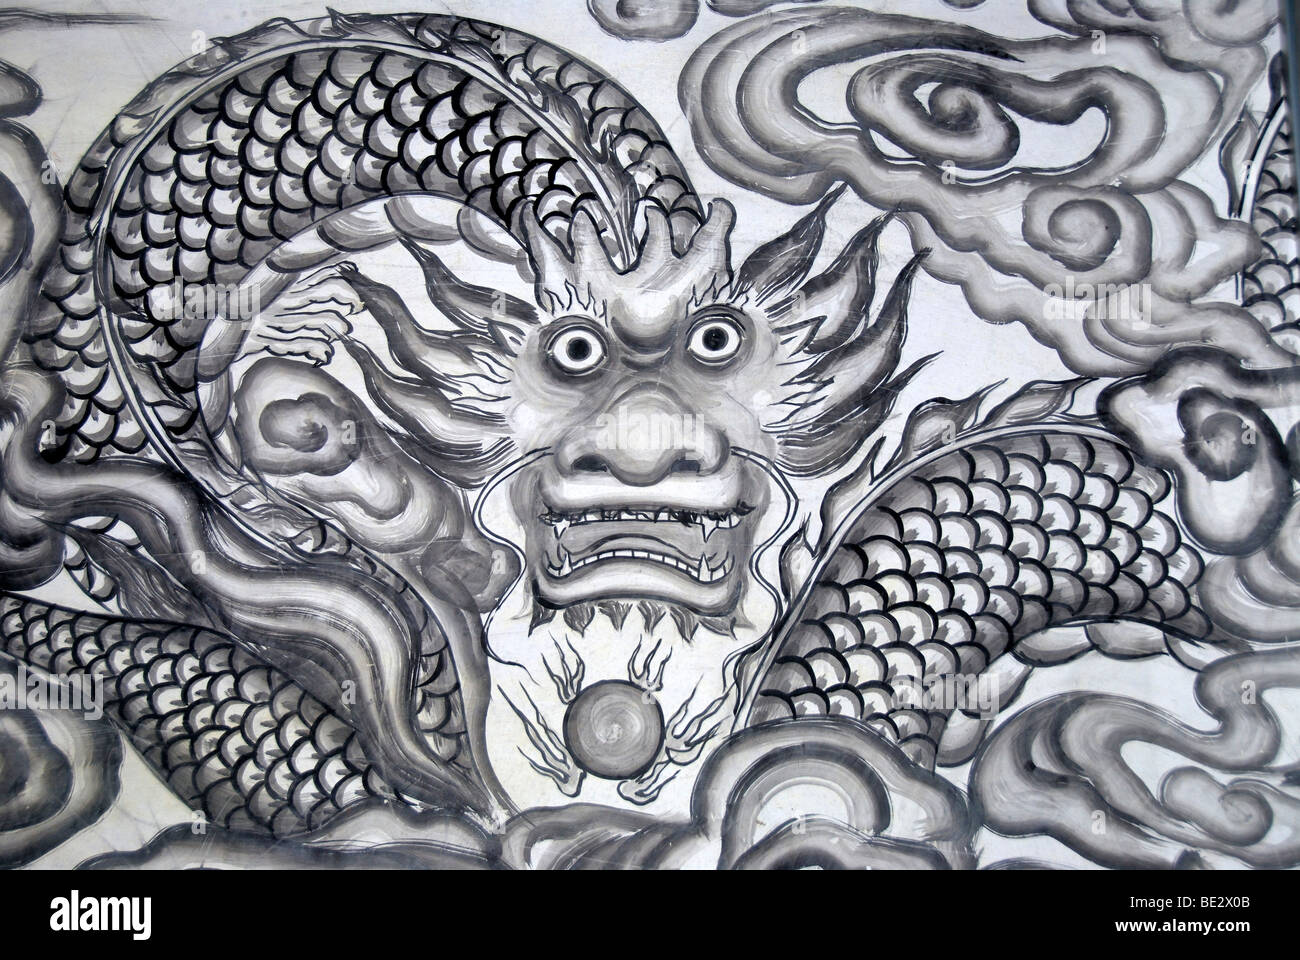 Chinese Buddhism, mural, dragon, temple in Xinji, Yunnan Province, People's Republic of China, Asia - Stock Image